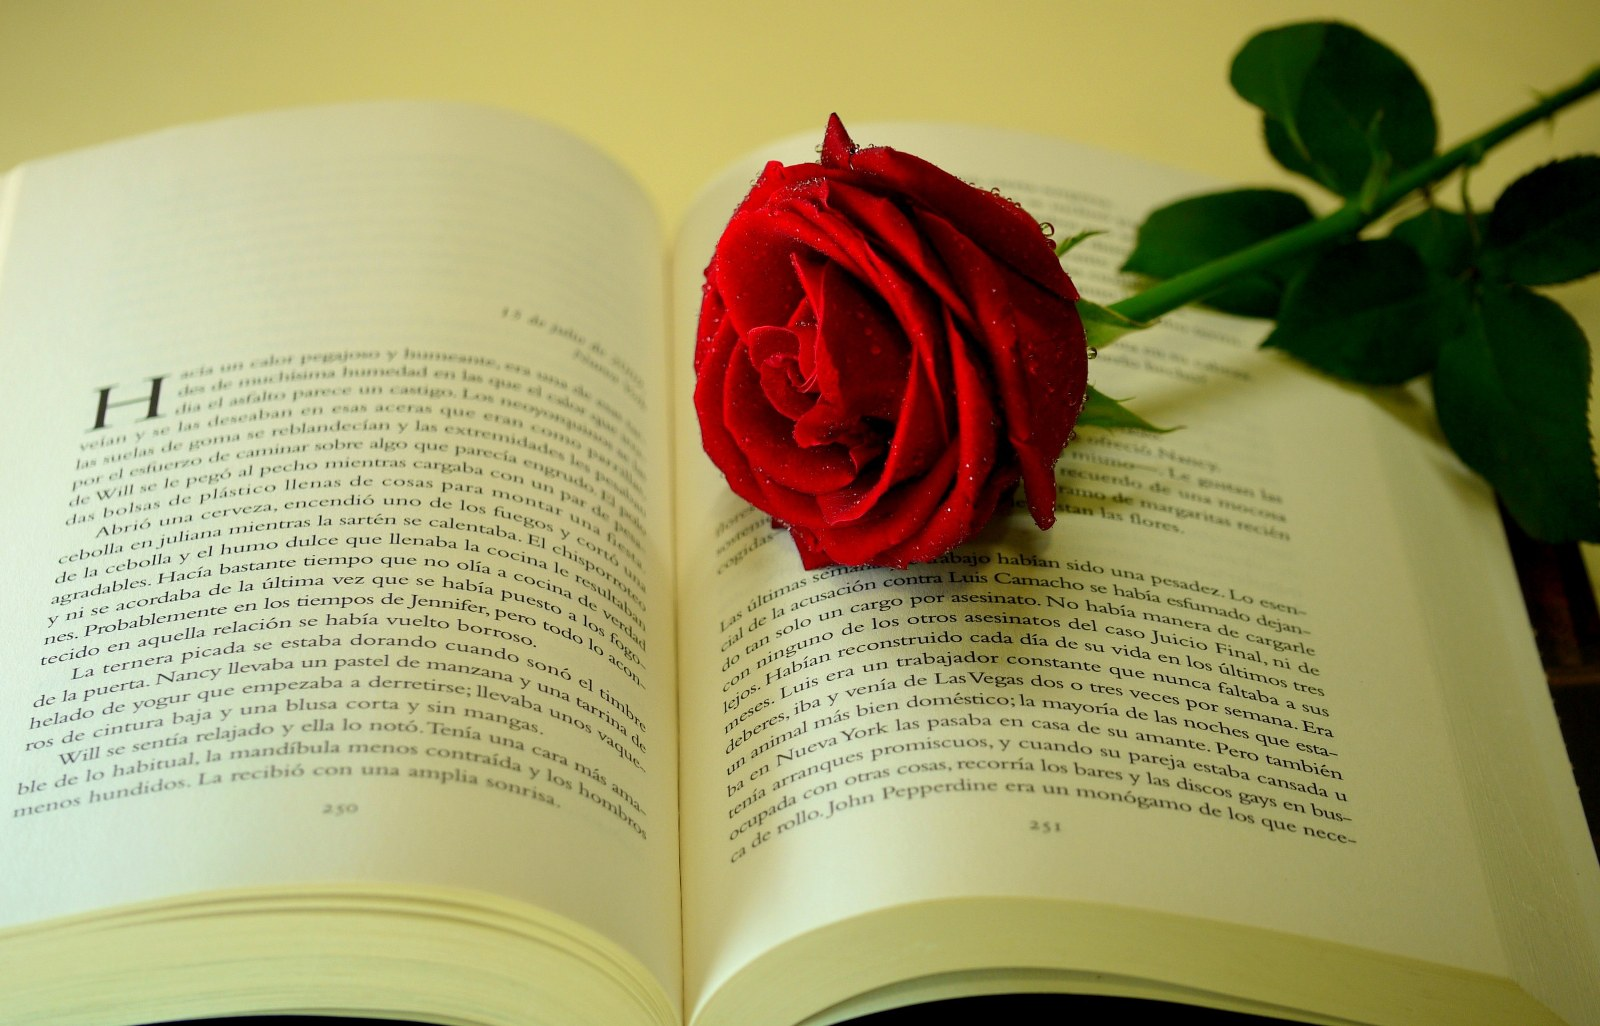 Book And Love Photos 16001026 wallpapers55com   Best Wallpapers 1600x1026